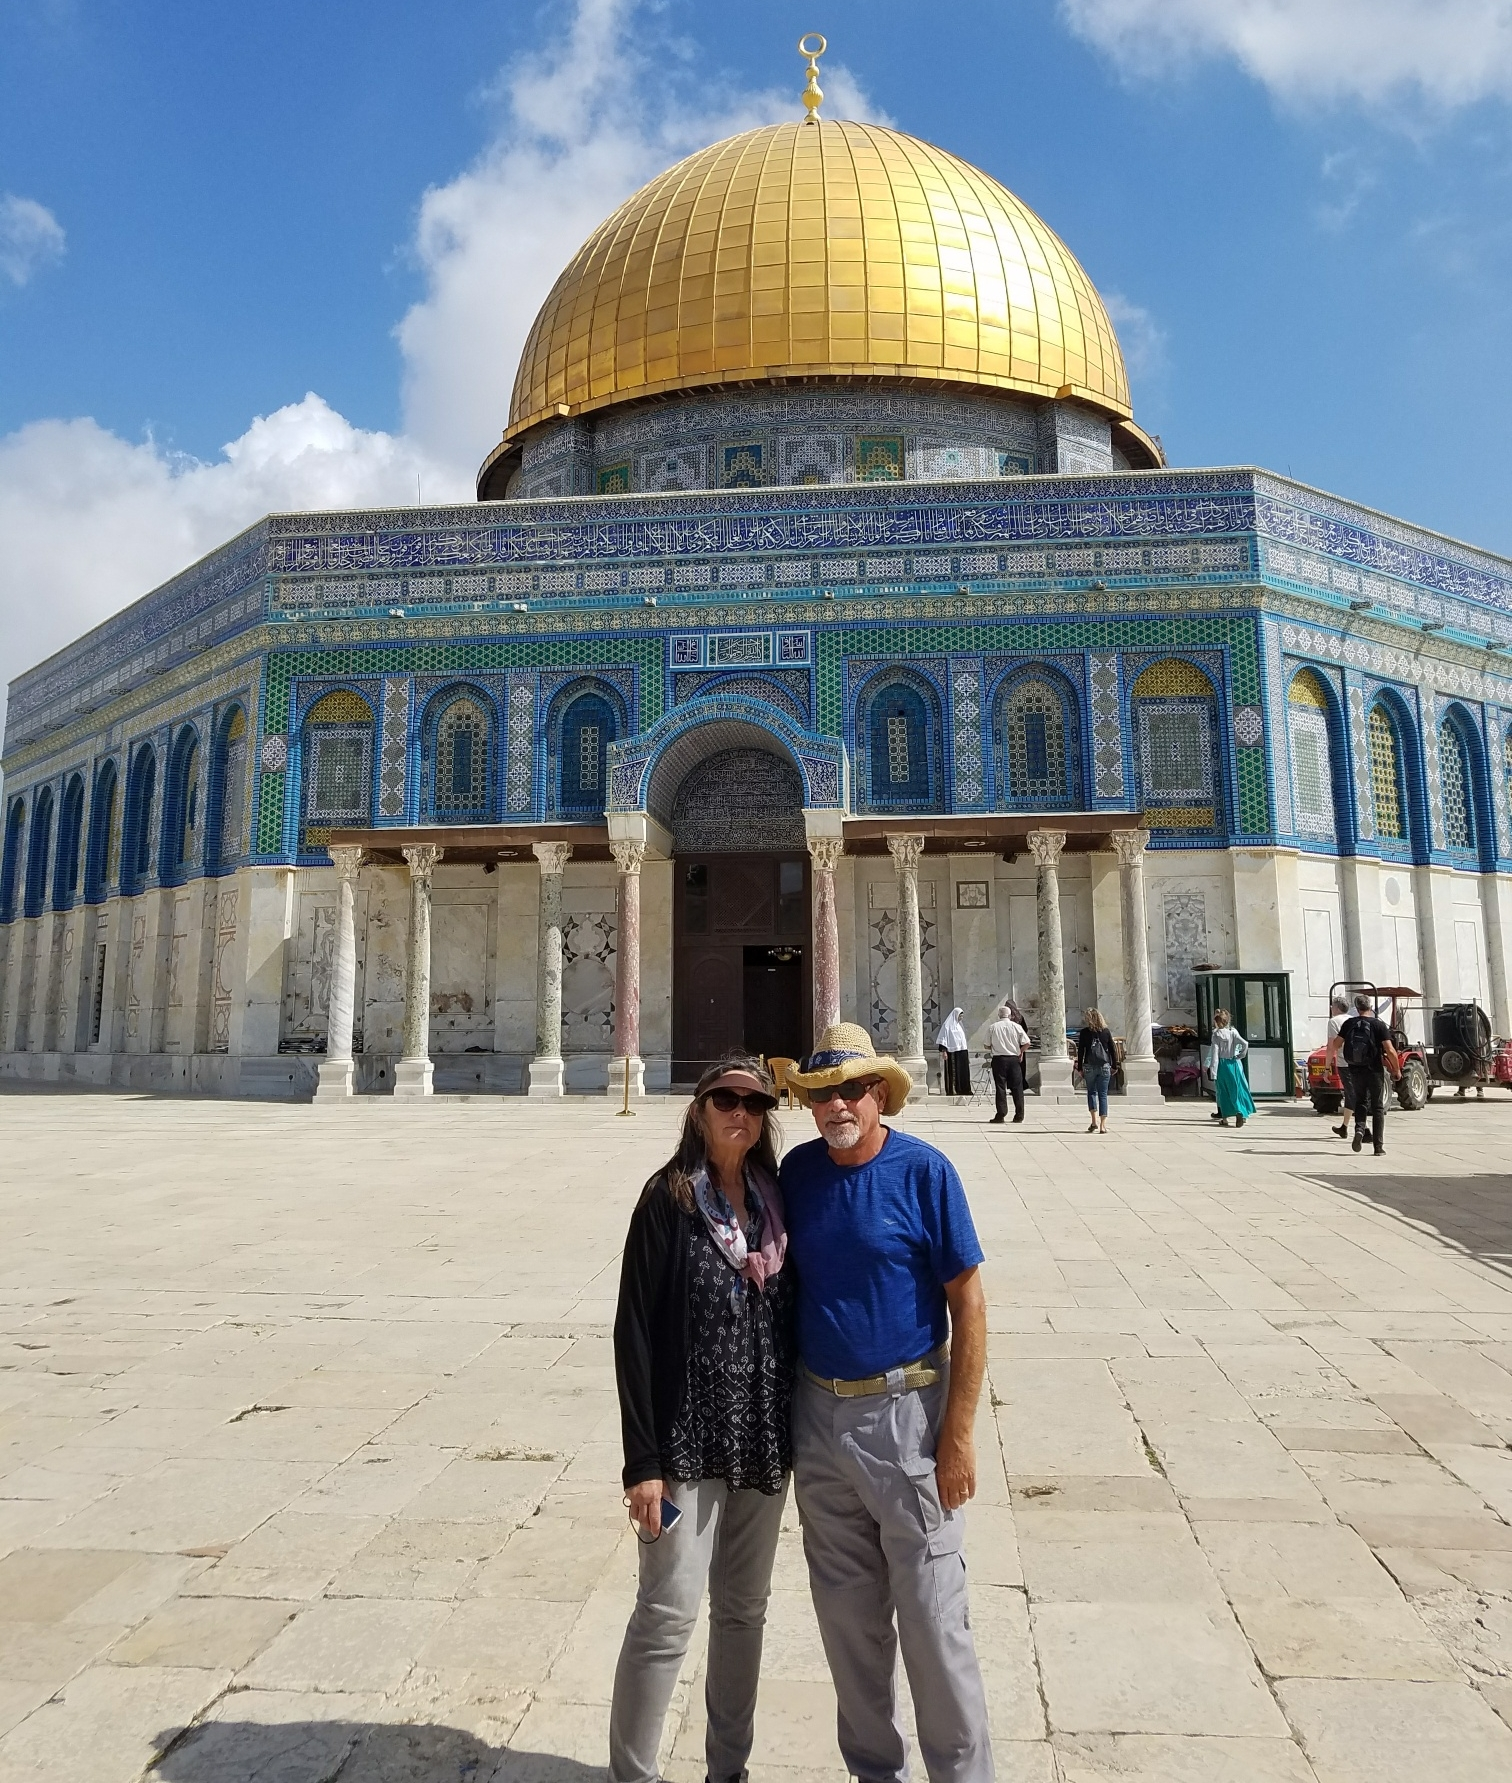 Jerusalem June 2018: A most amazing adventure full of inspiring cultural and artistic insights